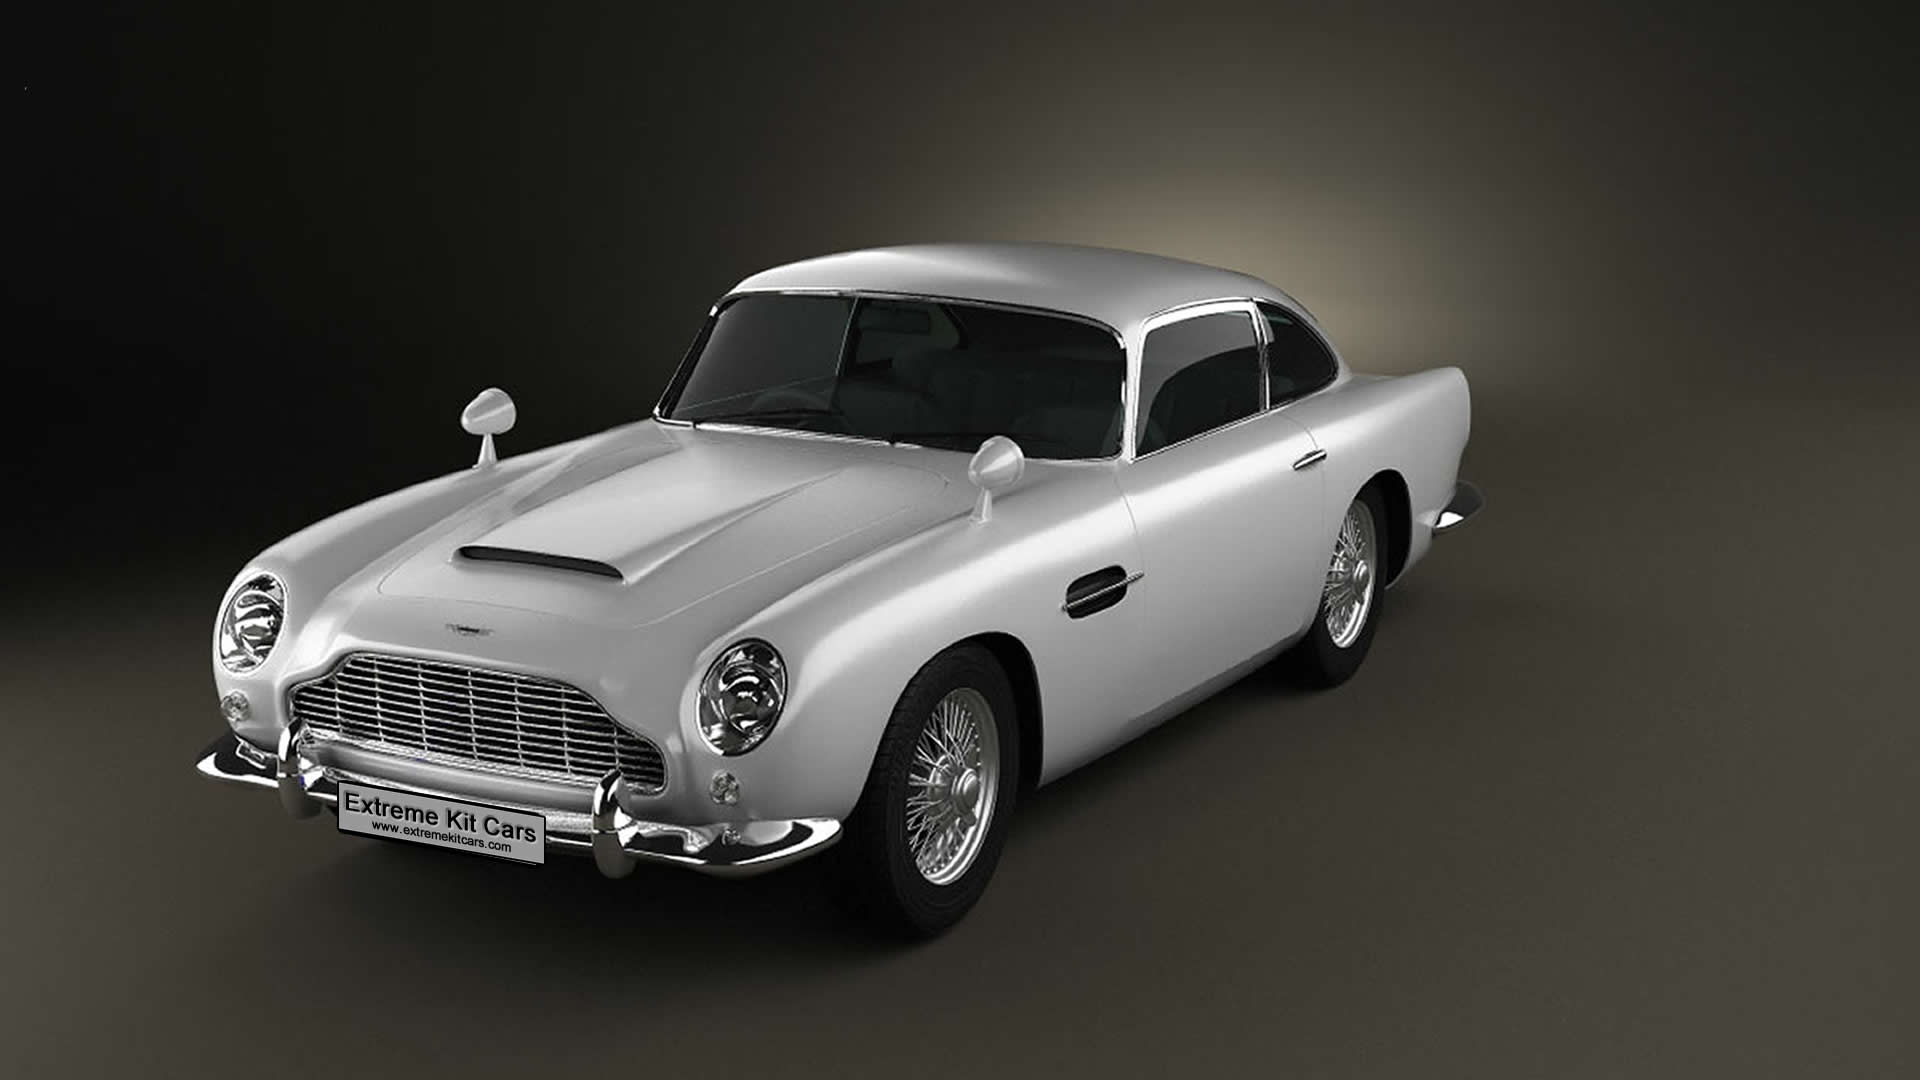 Aston Martin Db5 >> Aston Martin DB5 Wallpapers Images Photos Pictures Backgrounds